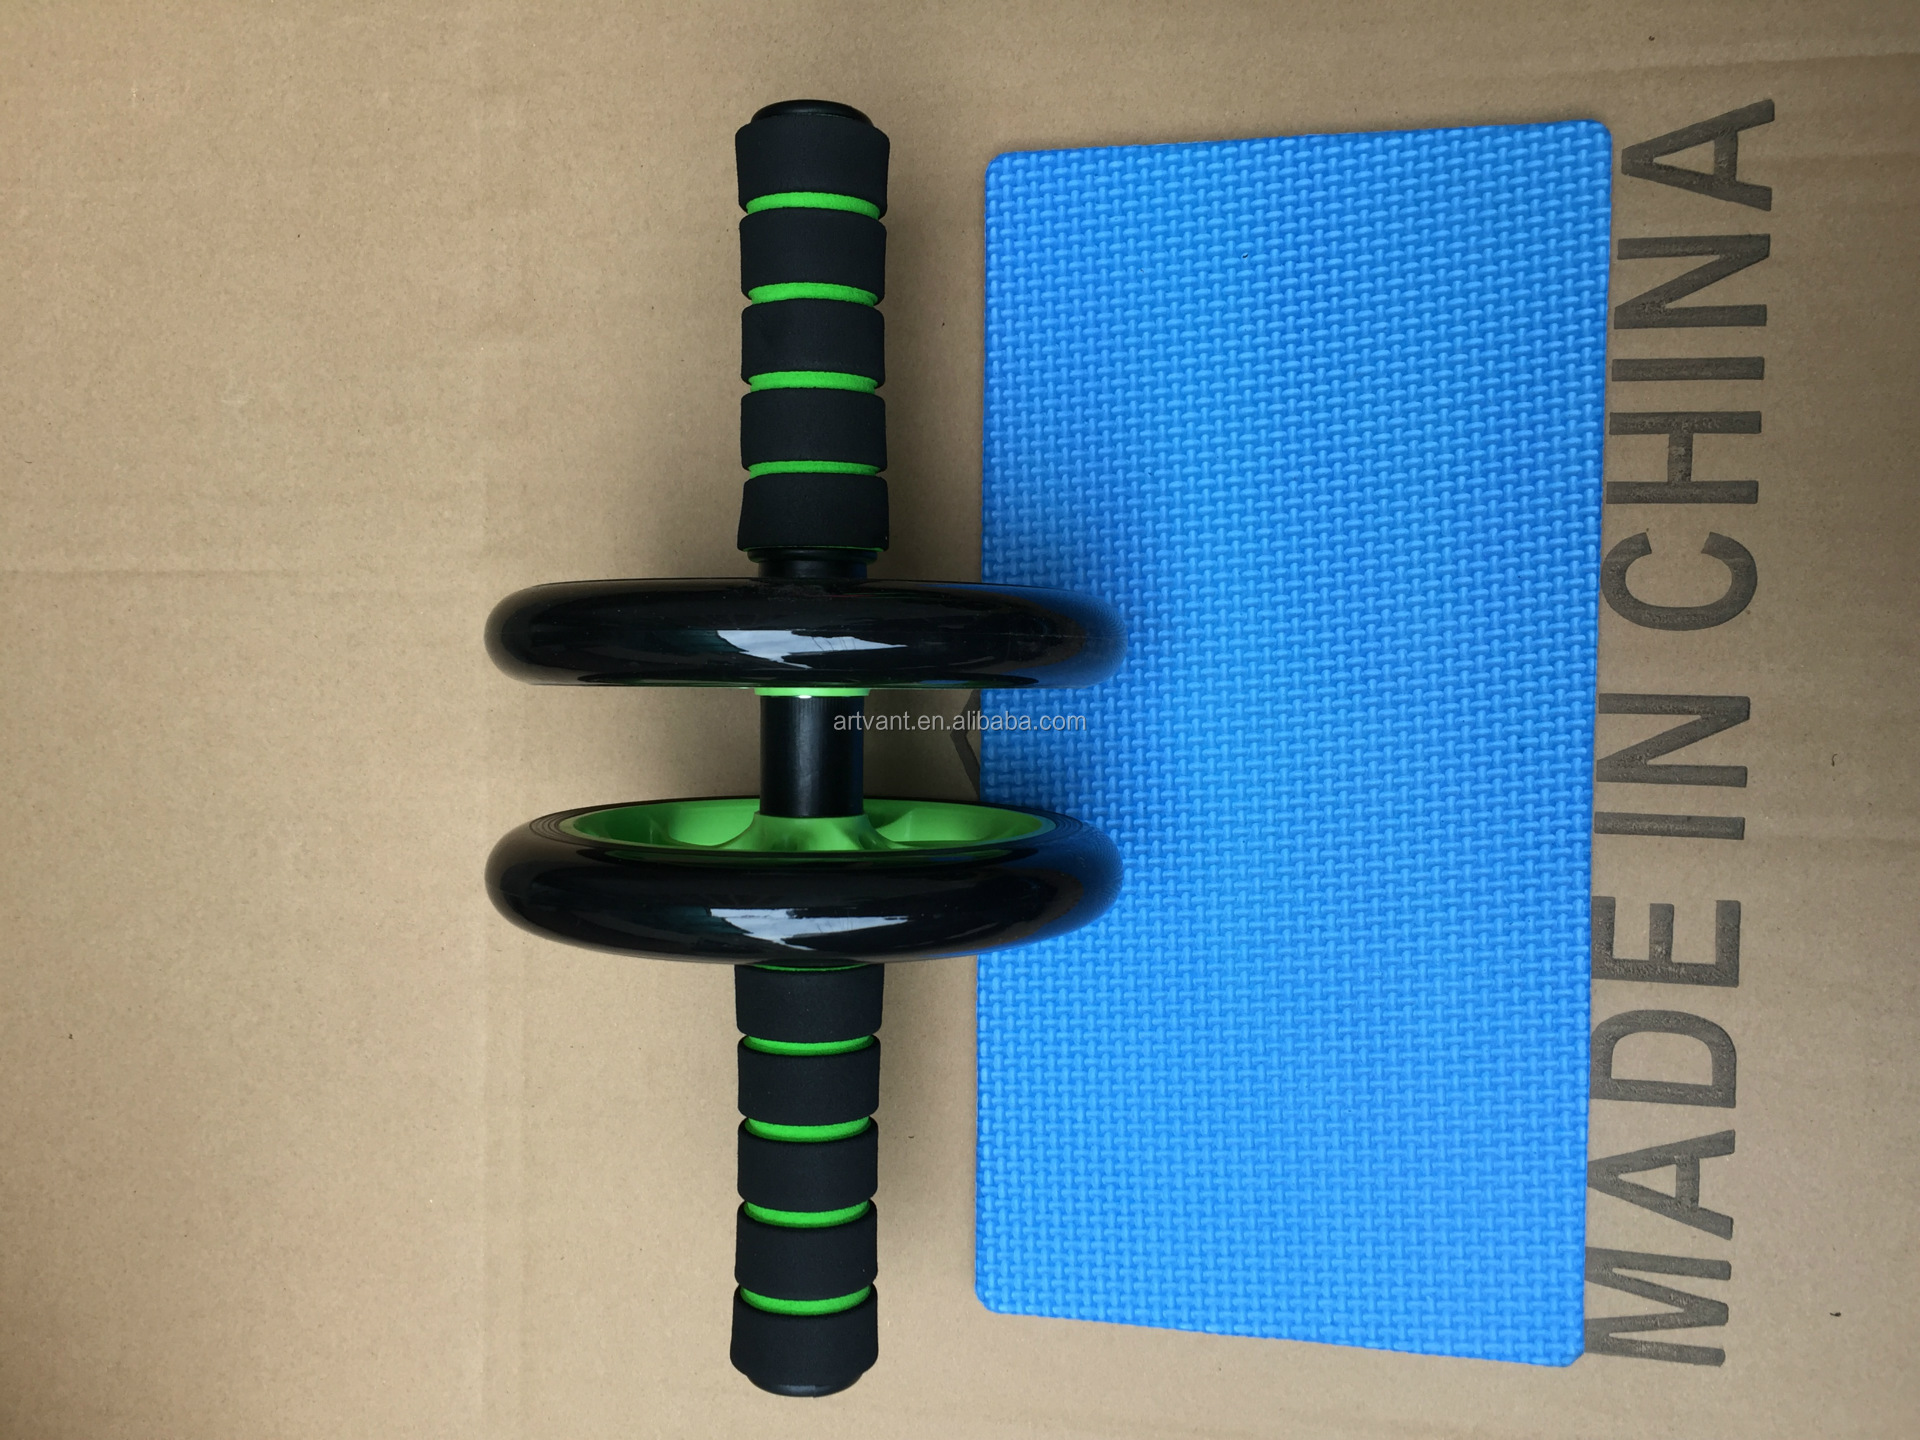 2019 Popular Fitness Abdominal Muscle Exercise Wheel and Outdoor Abdominal Muscle Exercise Tool and Weight Loss Exercise Tool